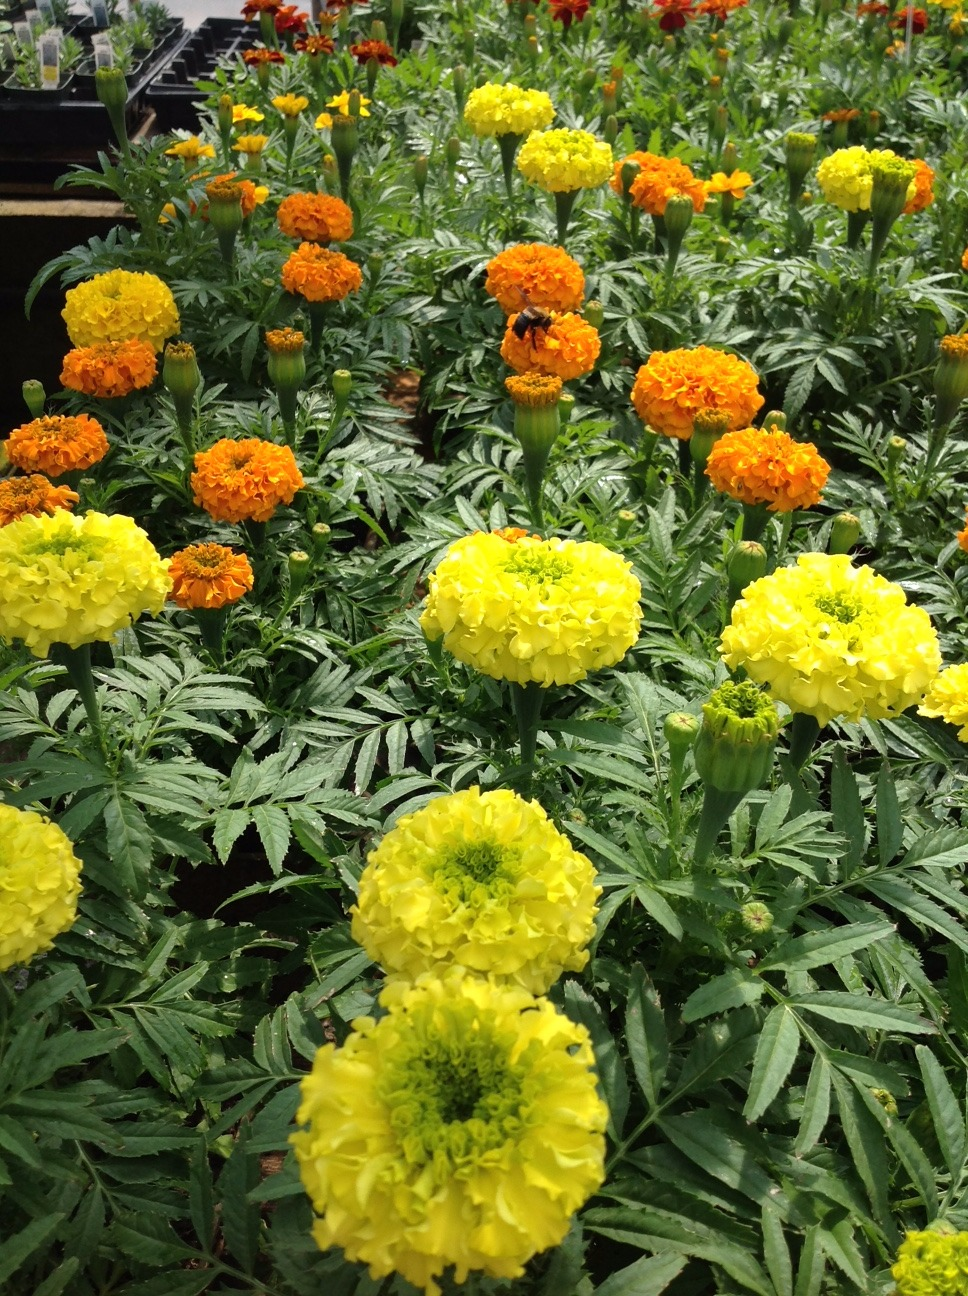 Marigolds_edited